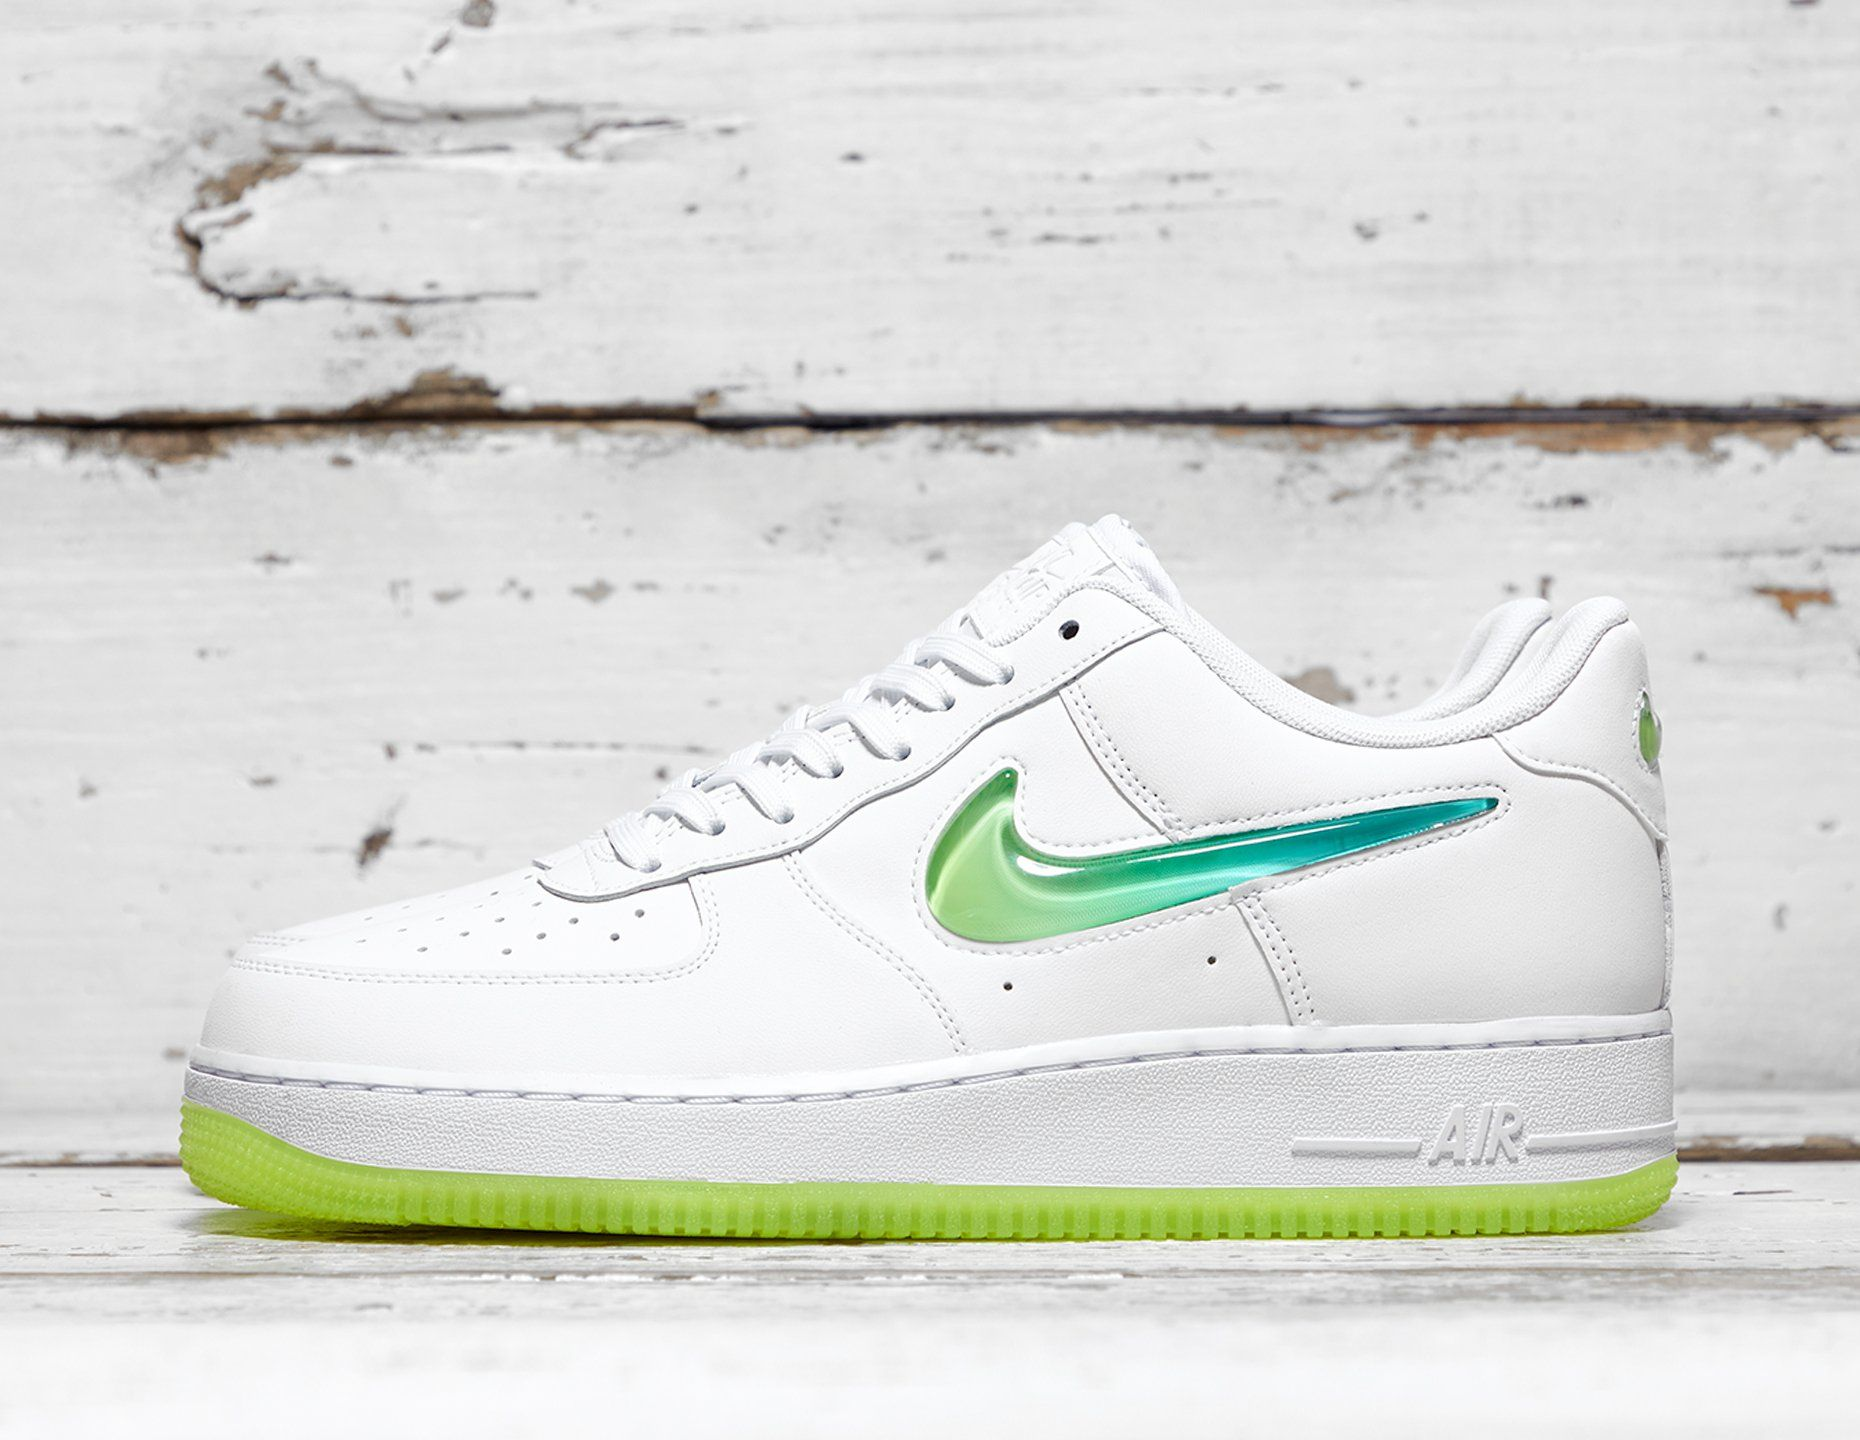 Nike Air Force 1 Premium 'Jelly'